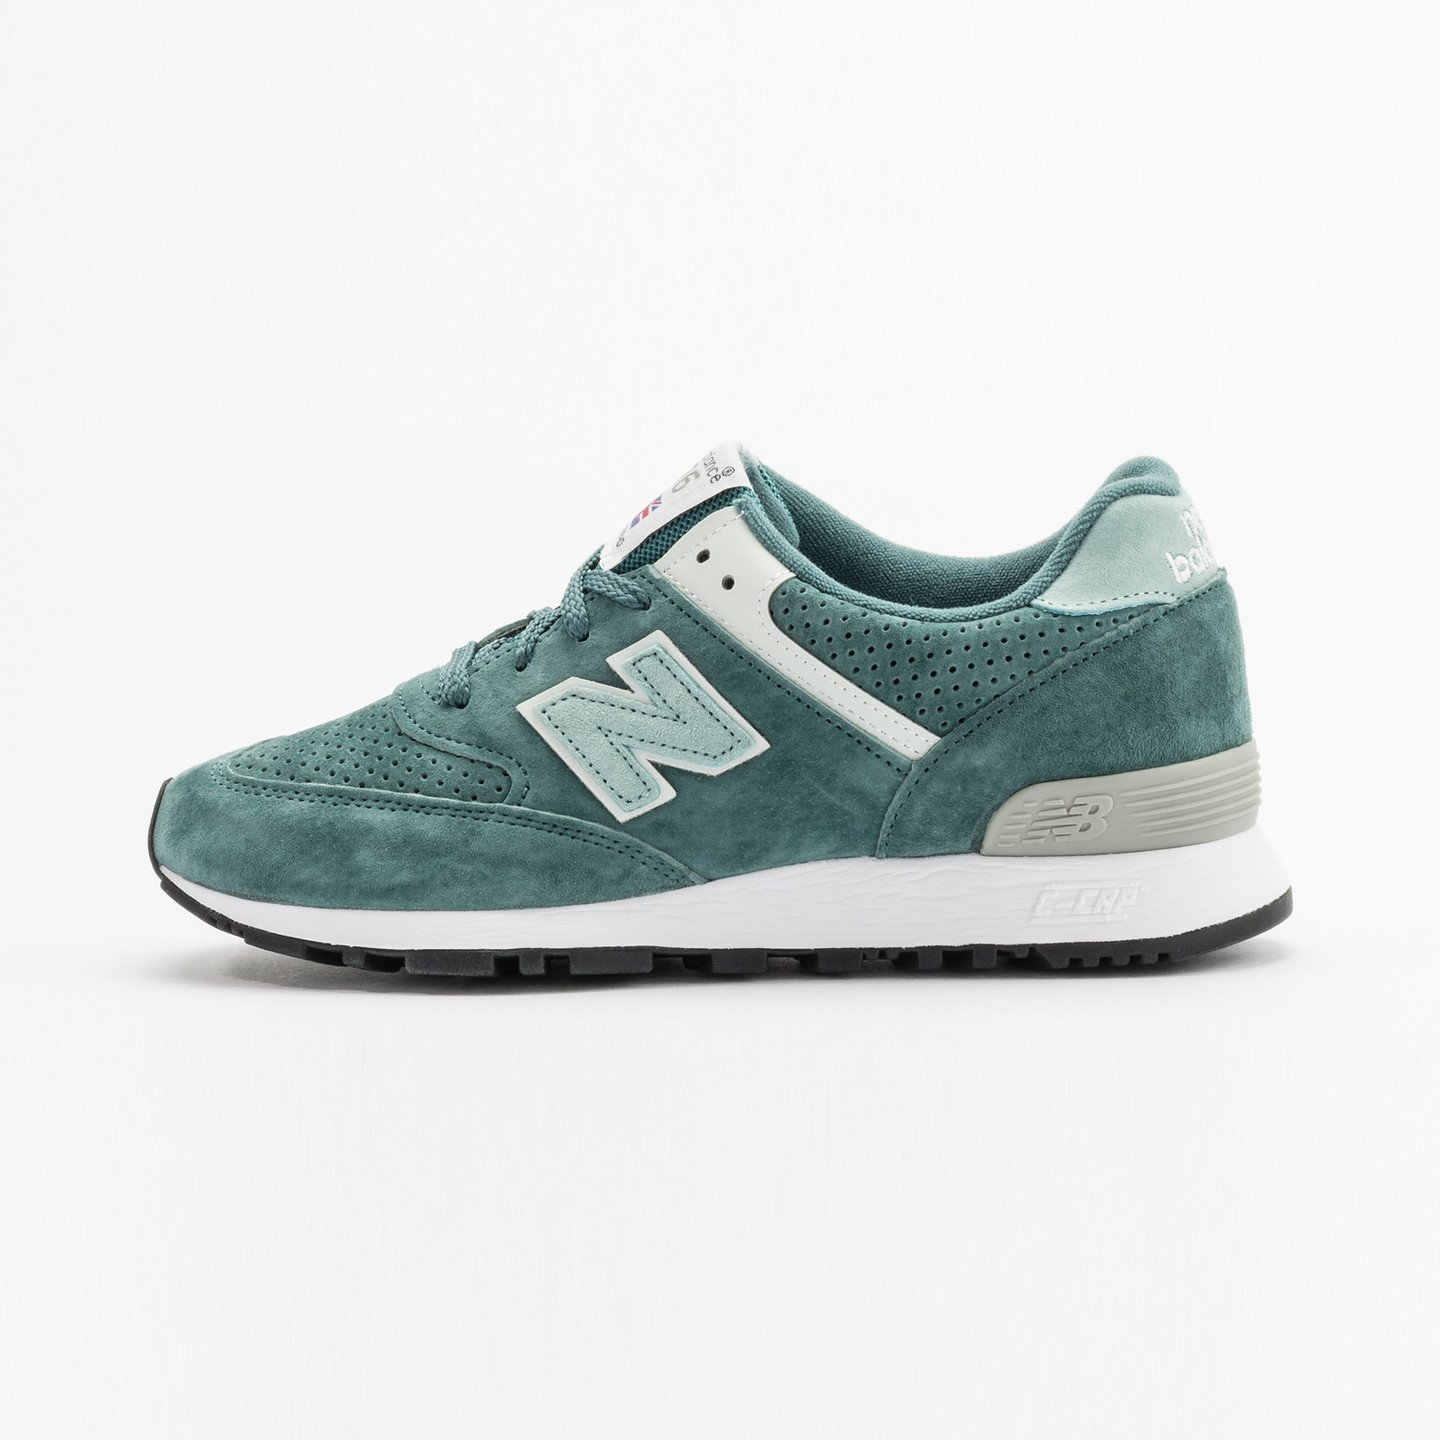 New Balance W 576 PMM - Made in UK Ocean Turquoise W576PMM-39